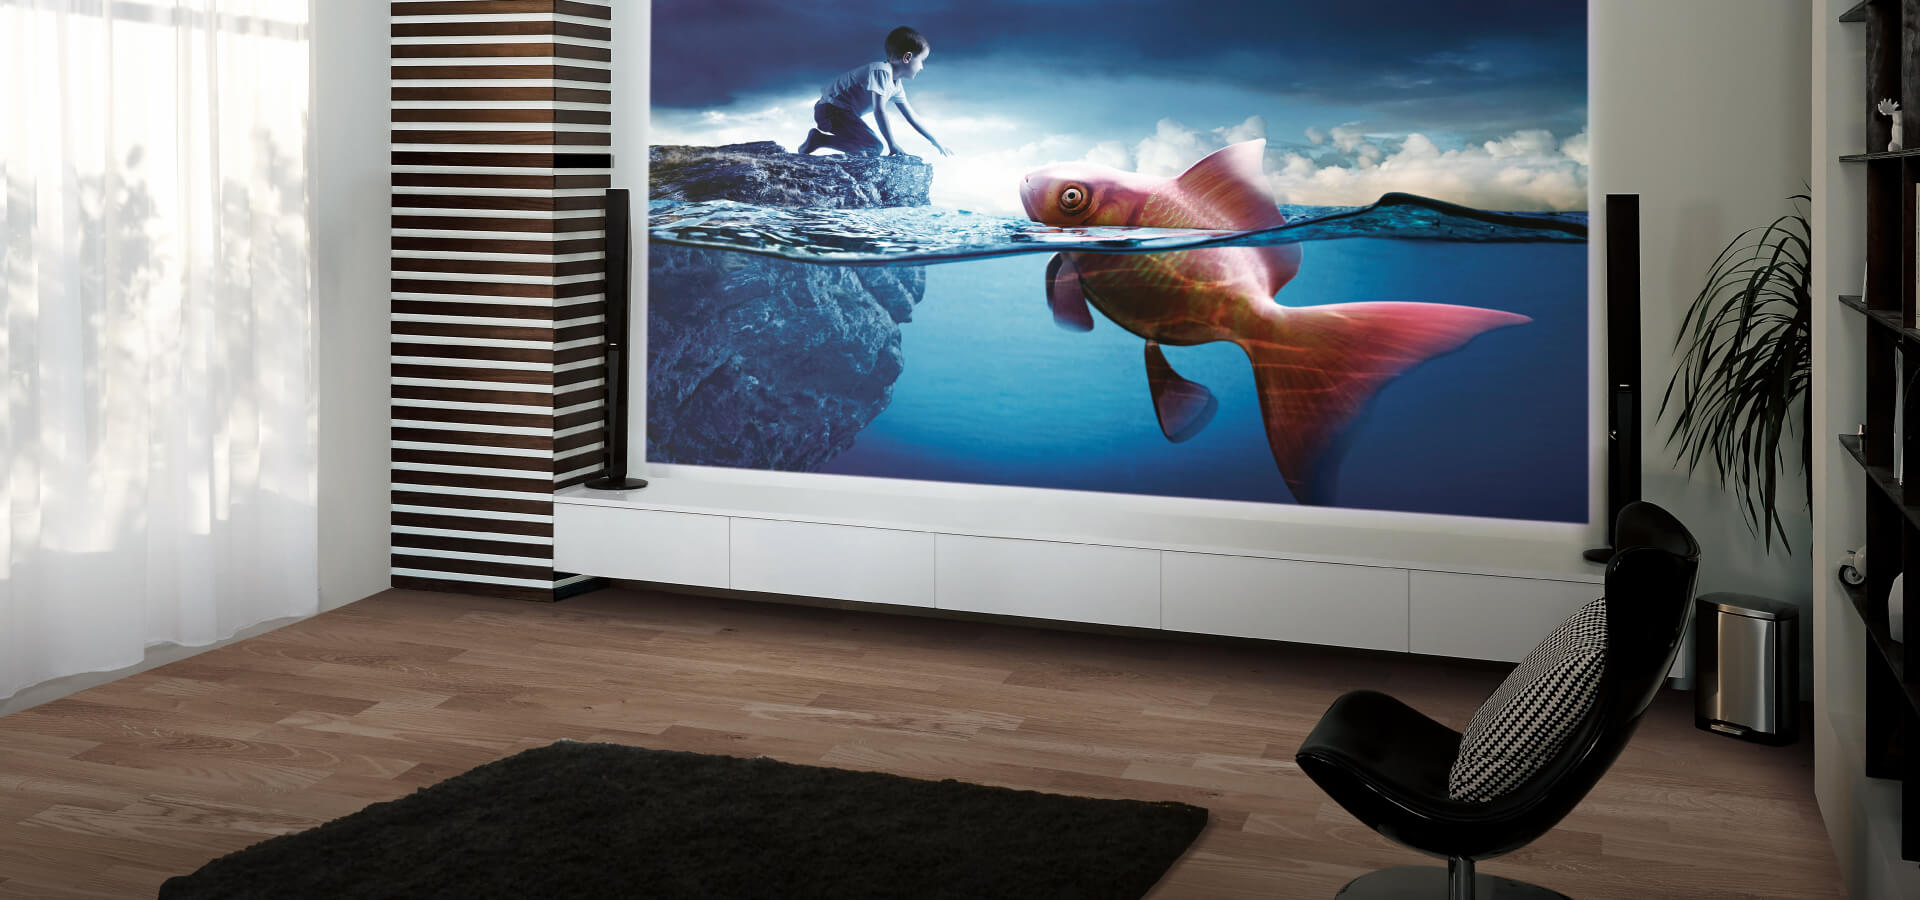 Home Theater Projector CineHome Series for Home Entertainment with ...